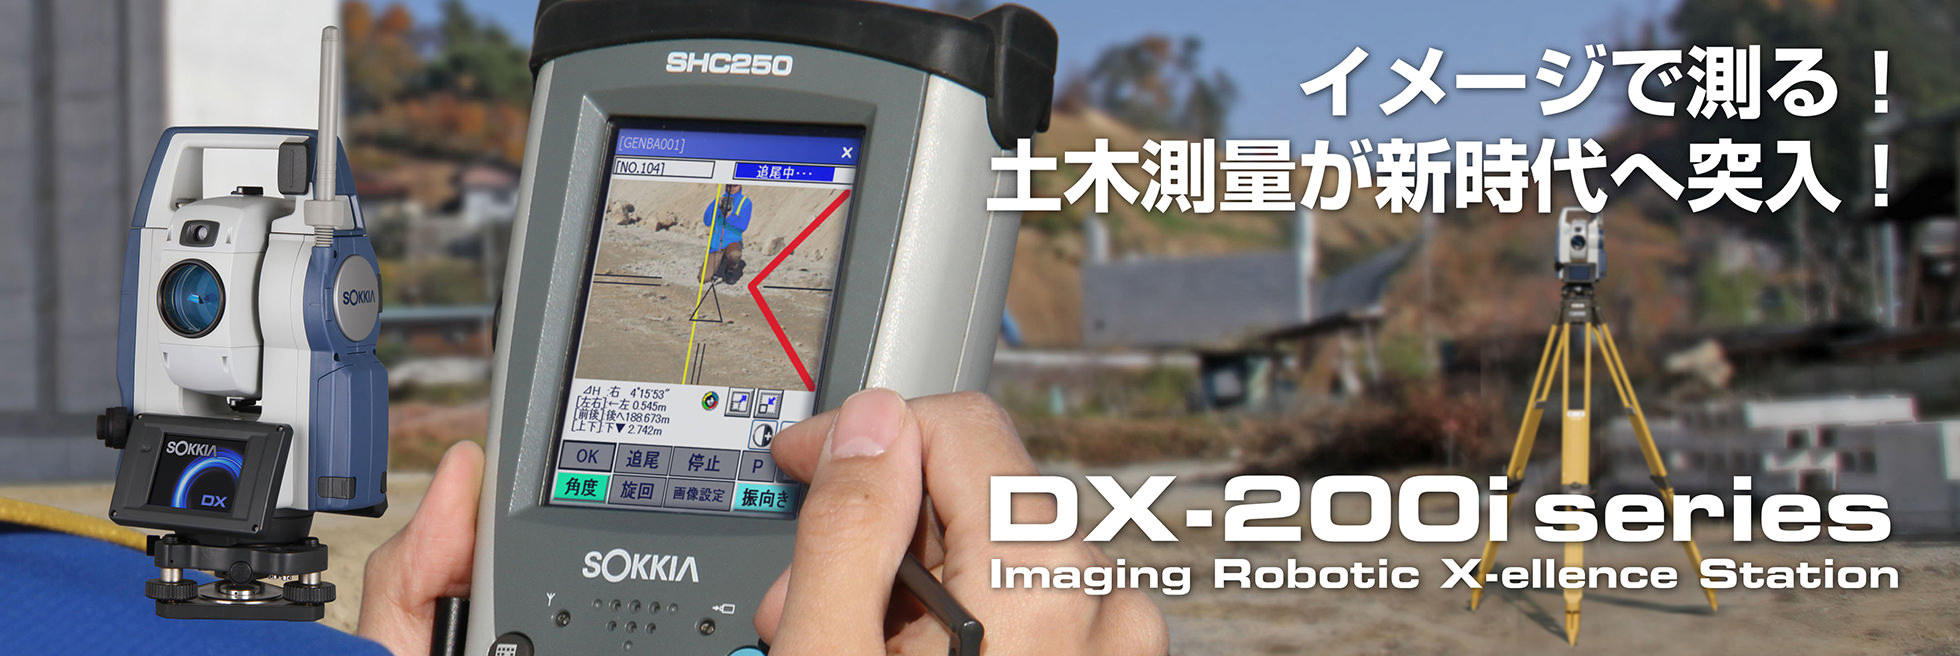 Imaging Robotic X-ellence Station DX-200i Series製品紹介ページへ